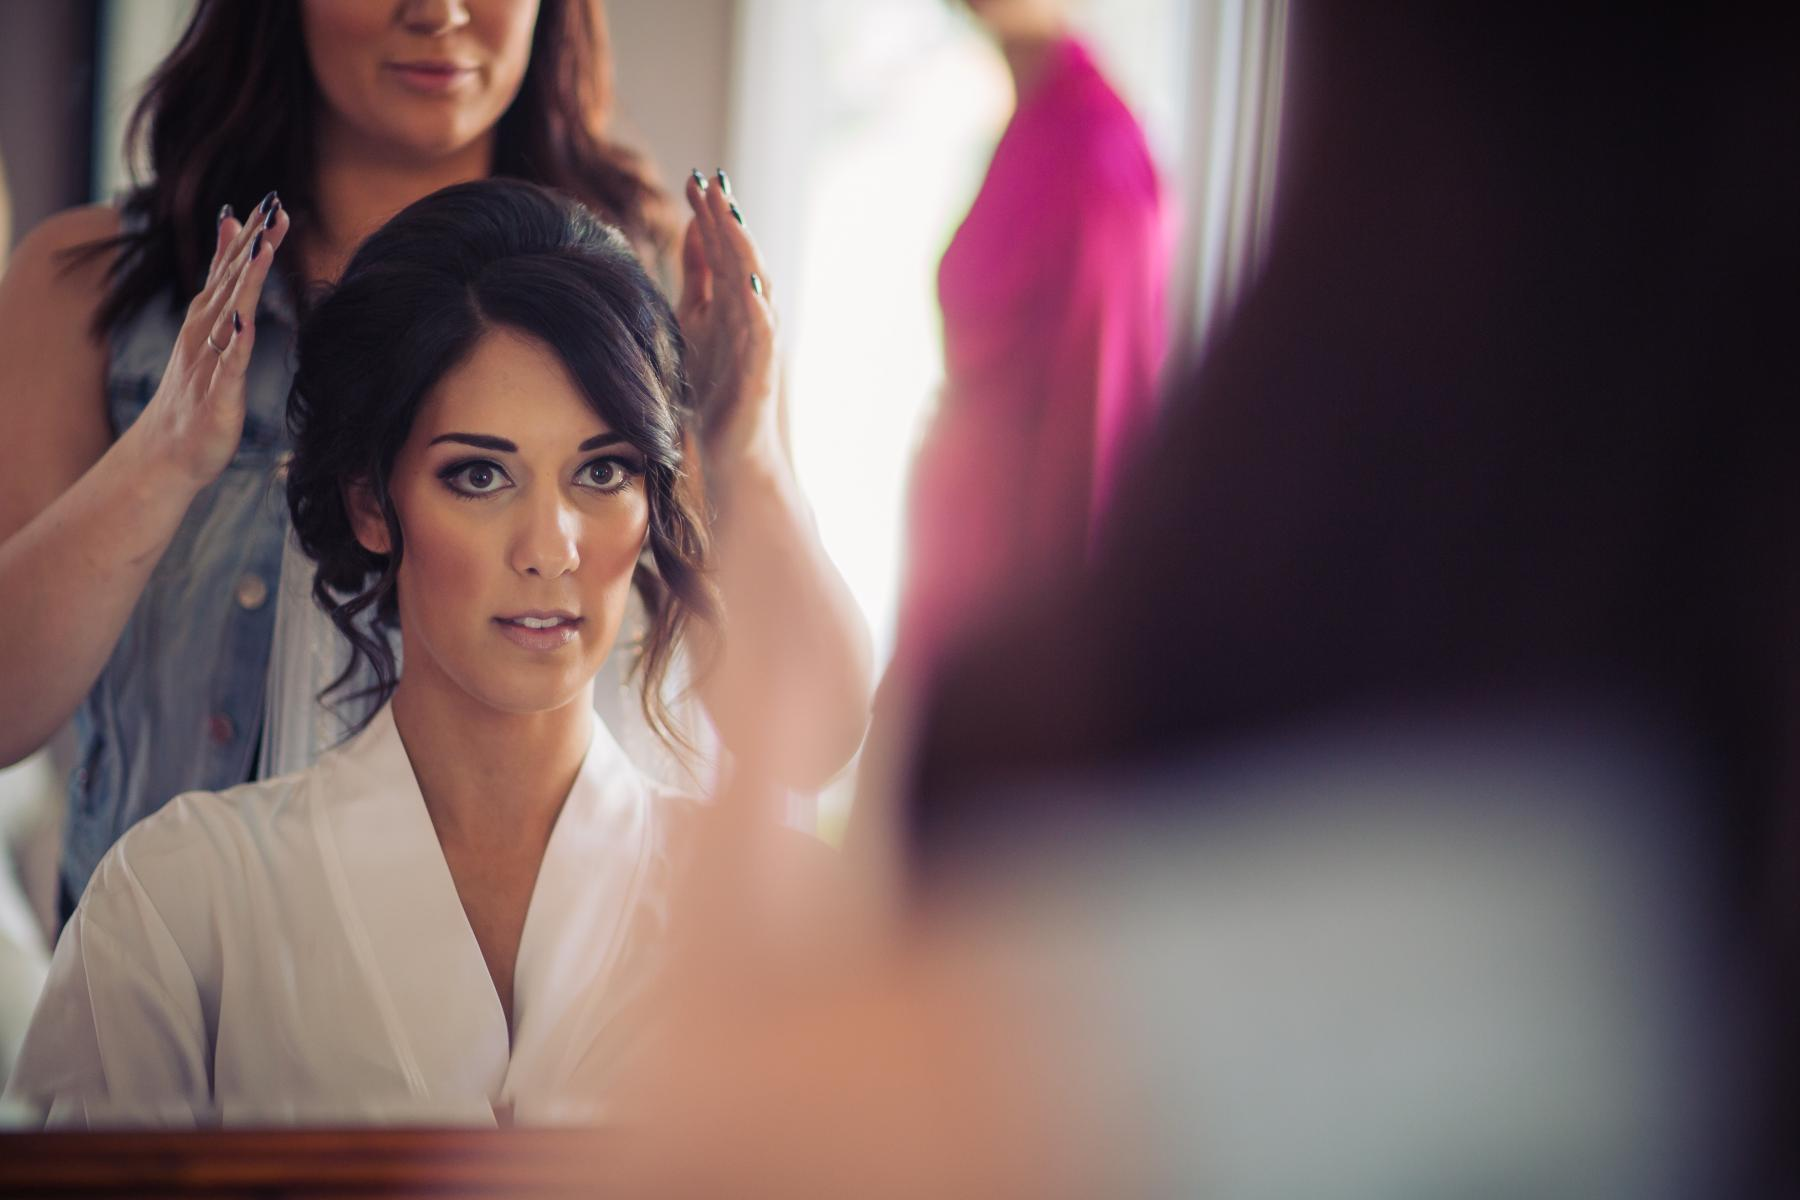 bride gettting ready for a wedding in edmonton alberta canada